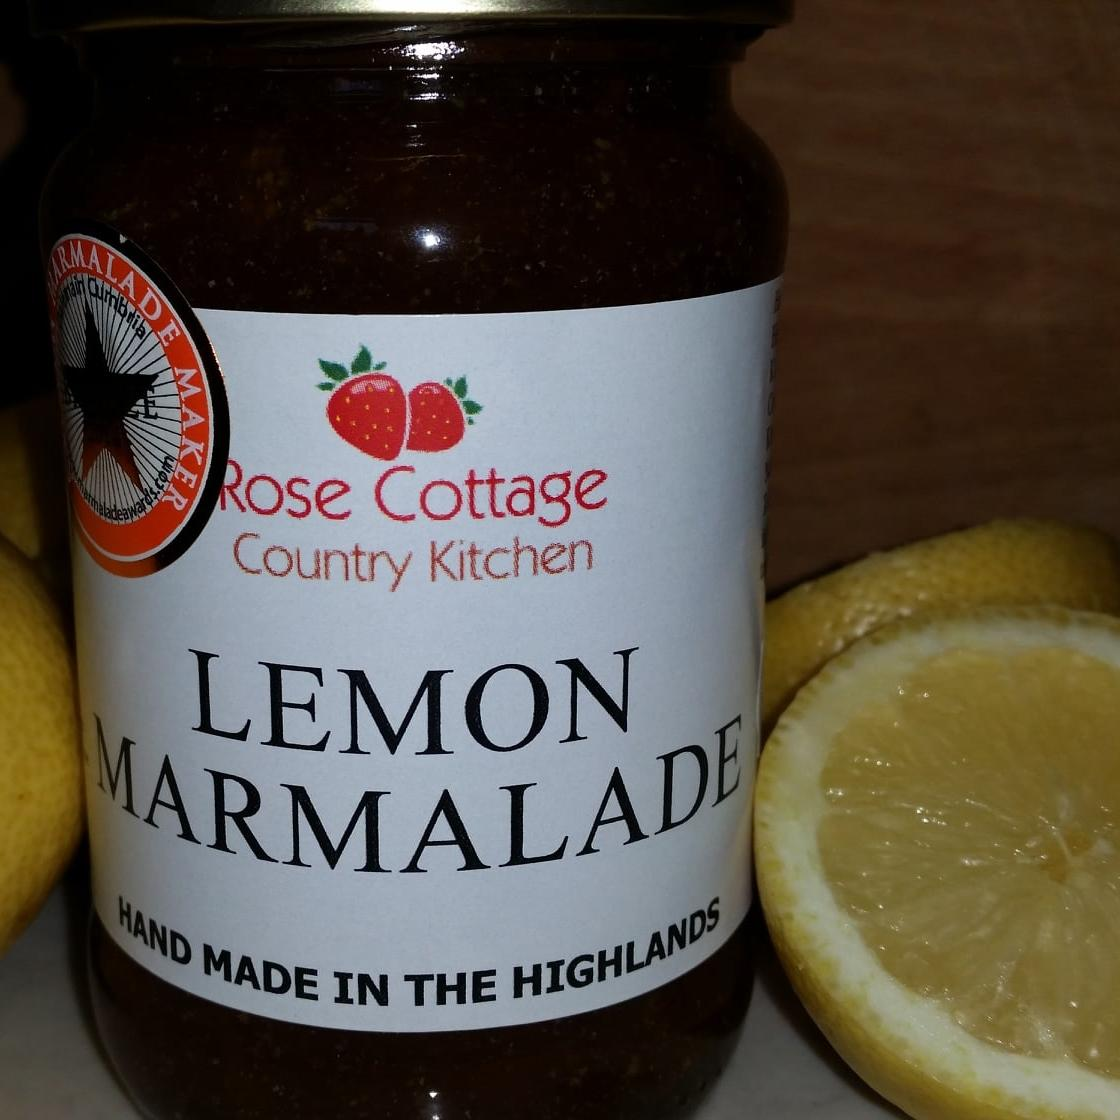 Jar of Lemon Marmalade